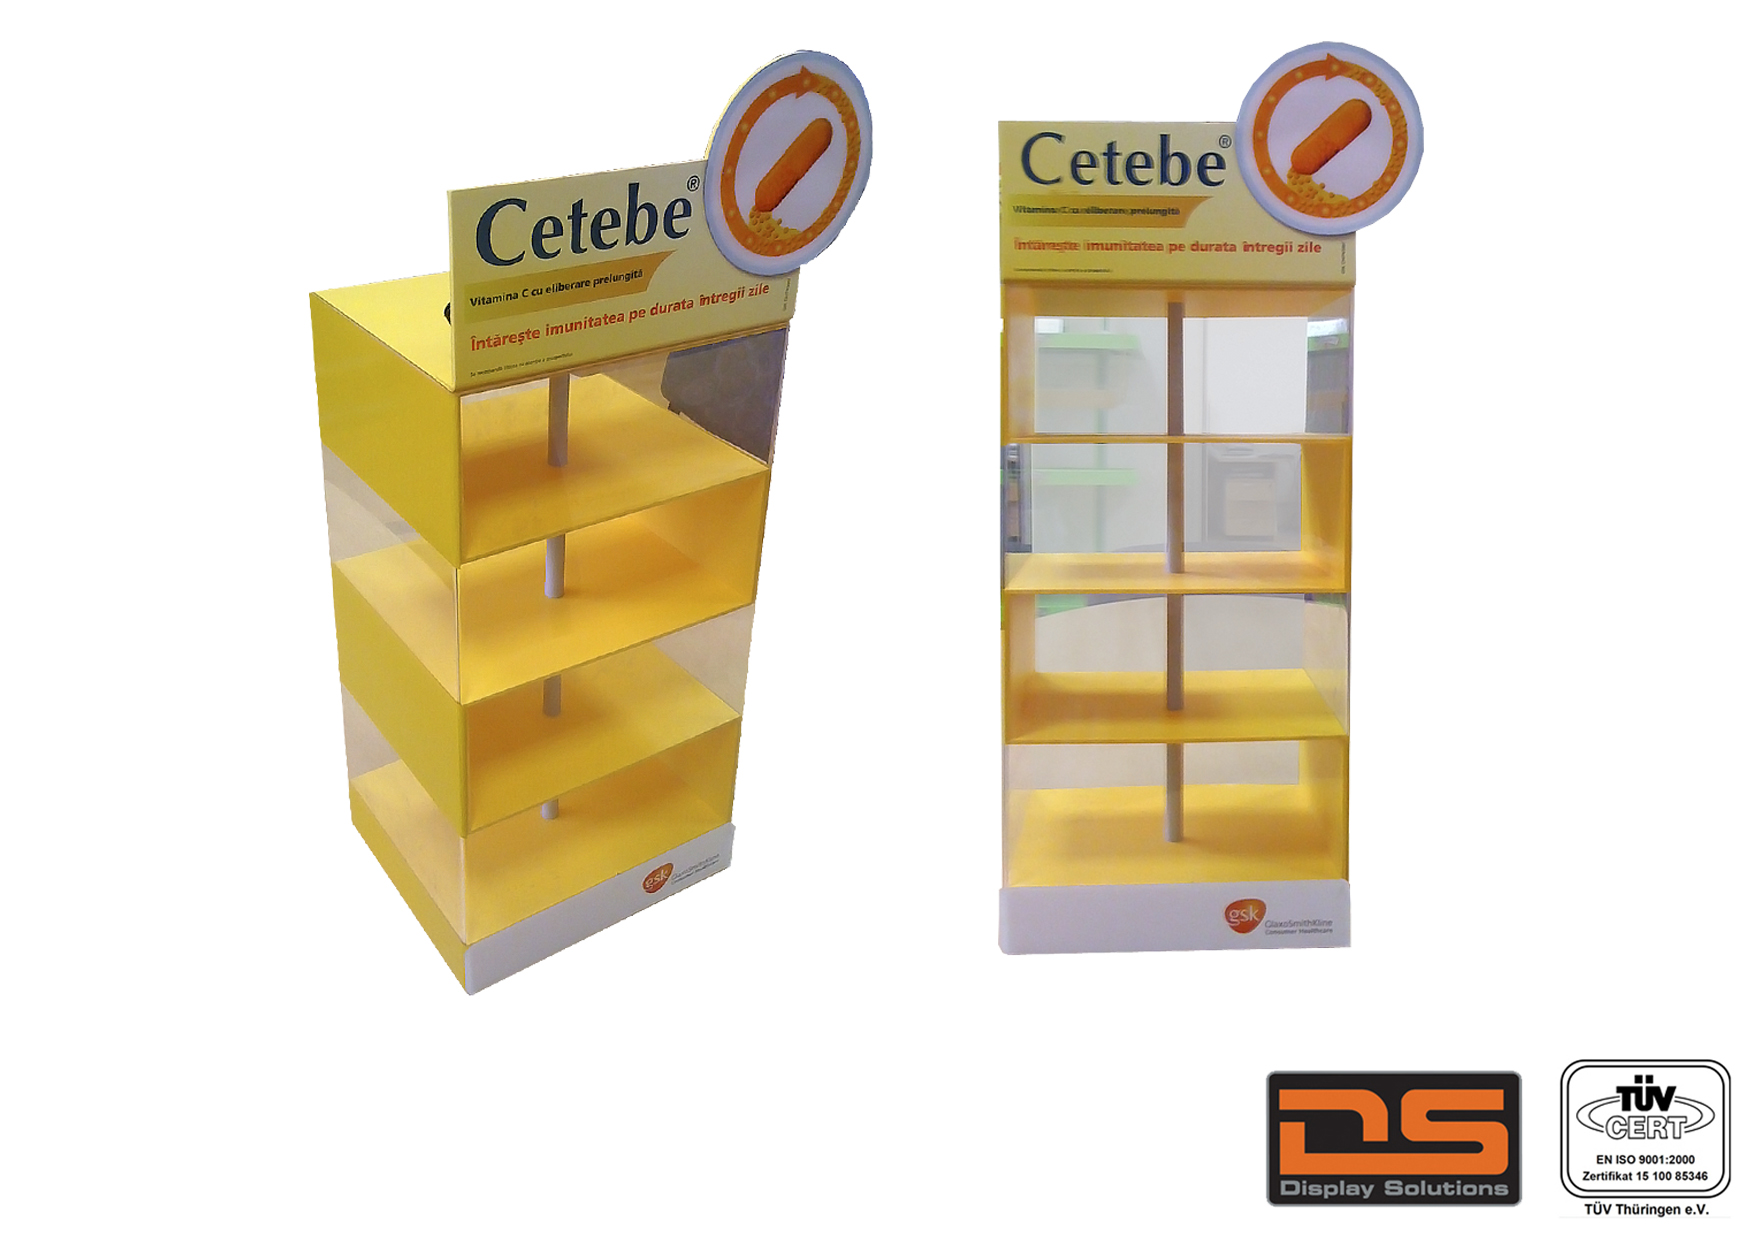 Special T Si >> Cetebe | Display Solutions